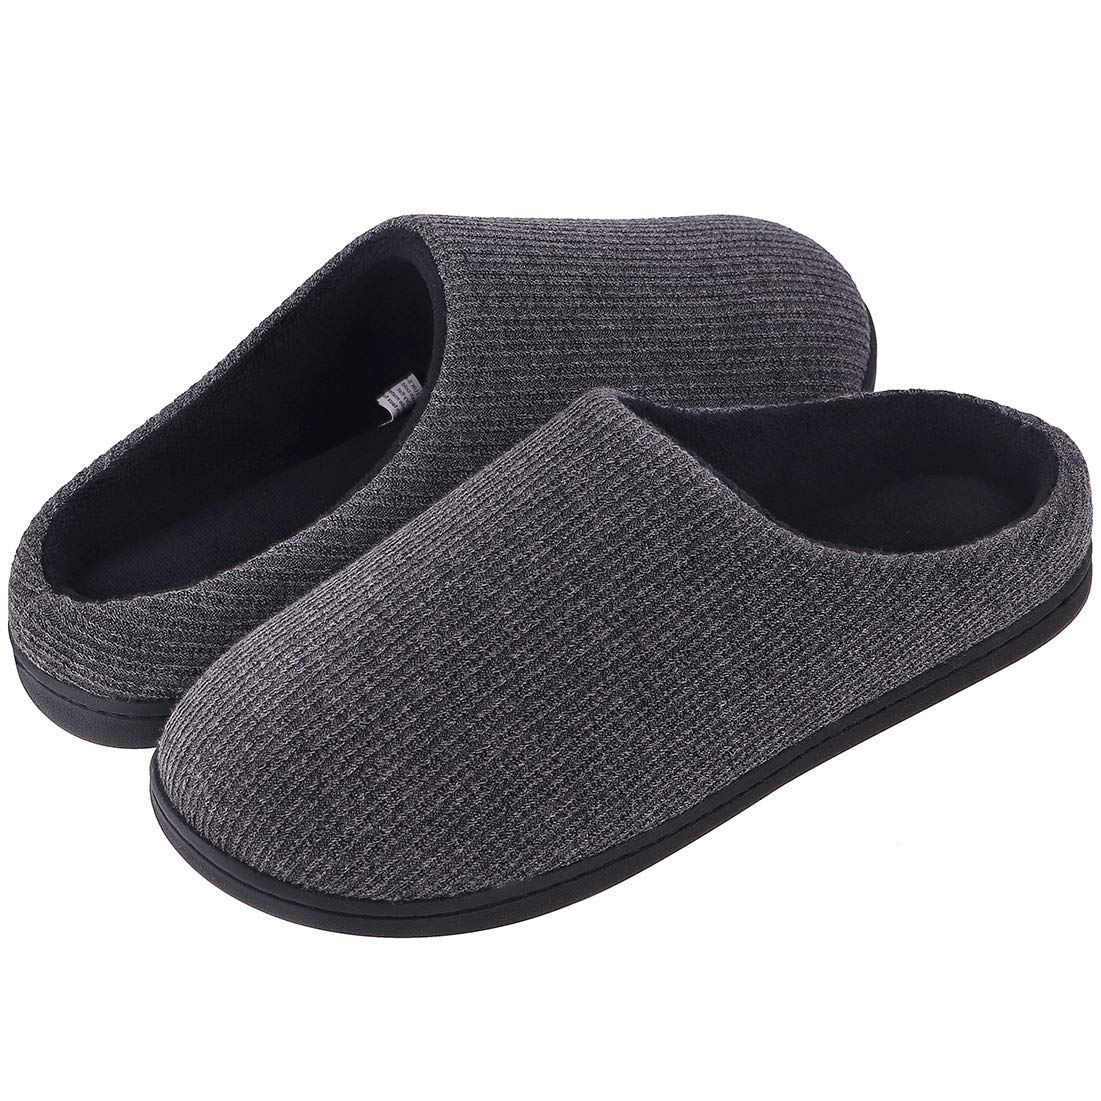 Women's Comfort Memory Foam Cable Knit Slippers Terry Cloth House Slippers w Non Slip Sole